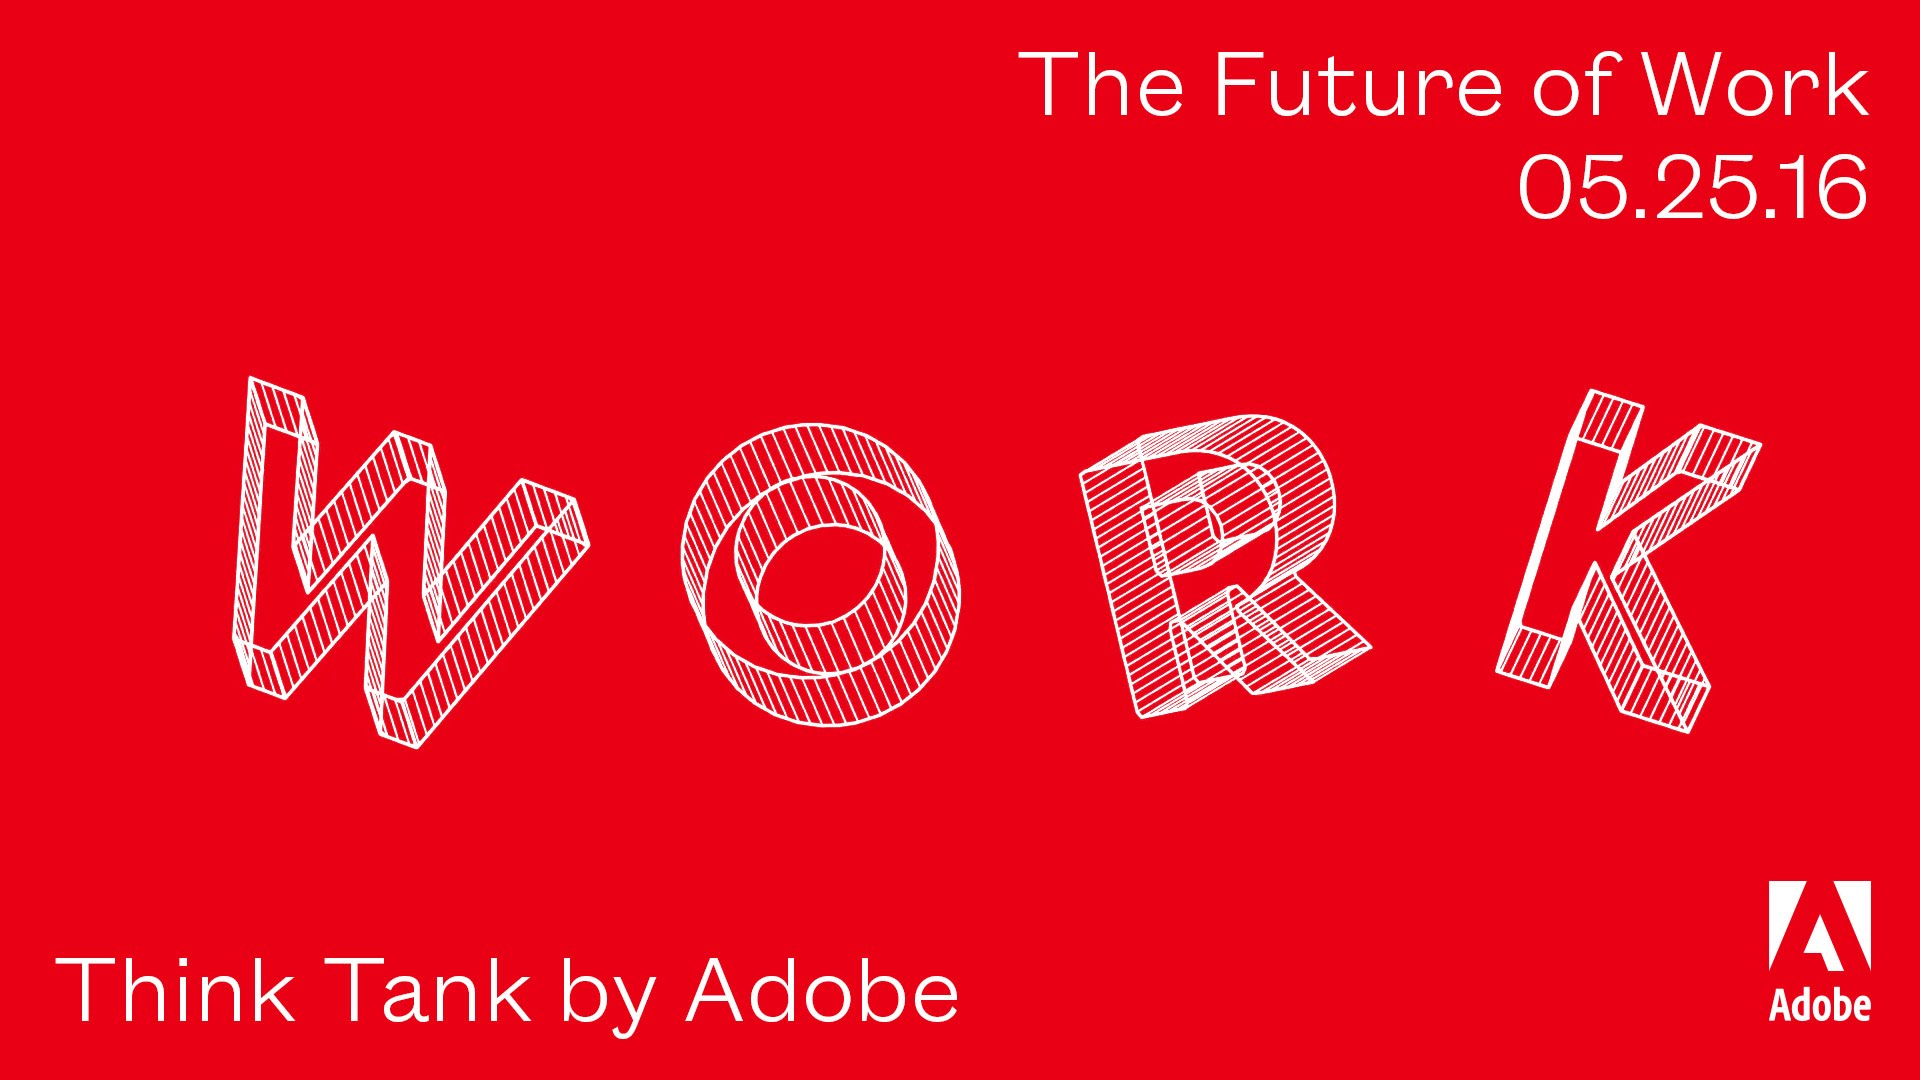 think tank by adobe the future of work adobe tank san francisco ca